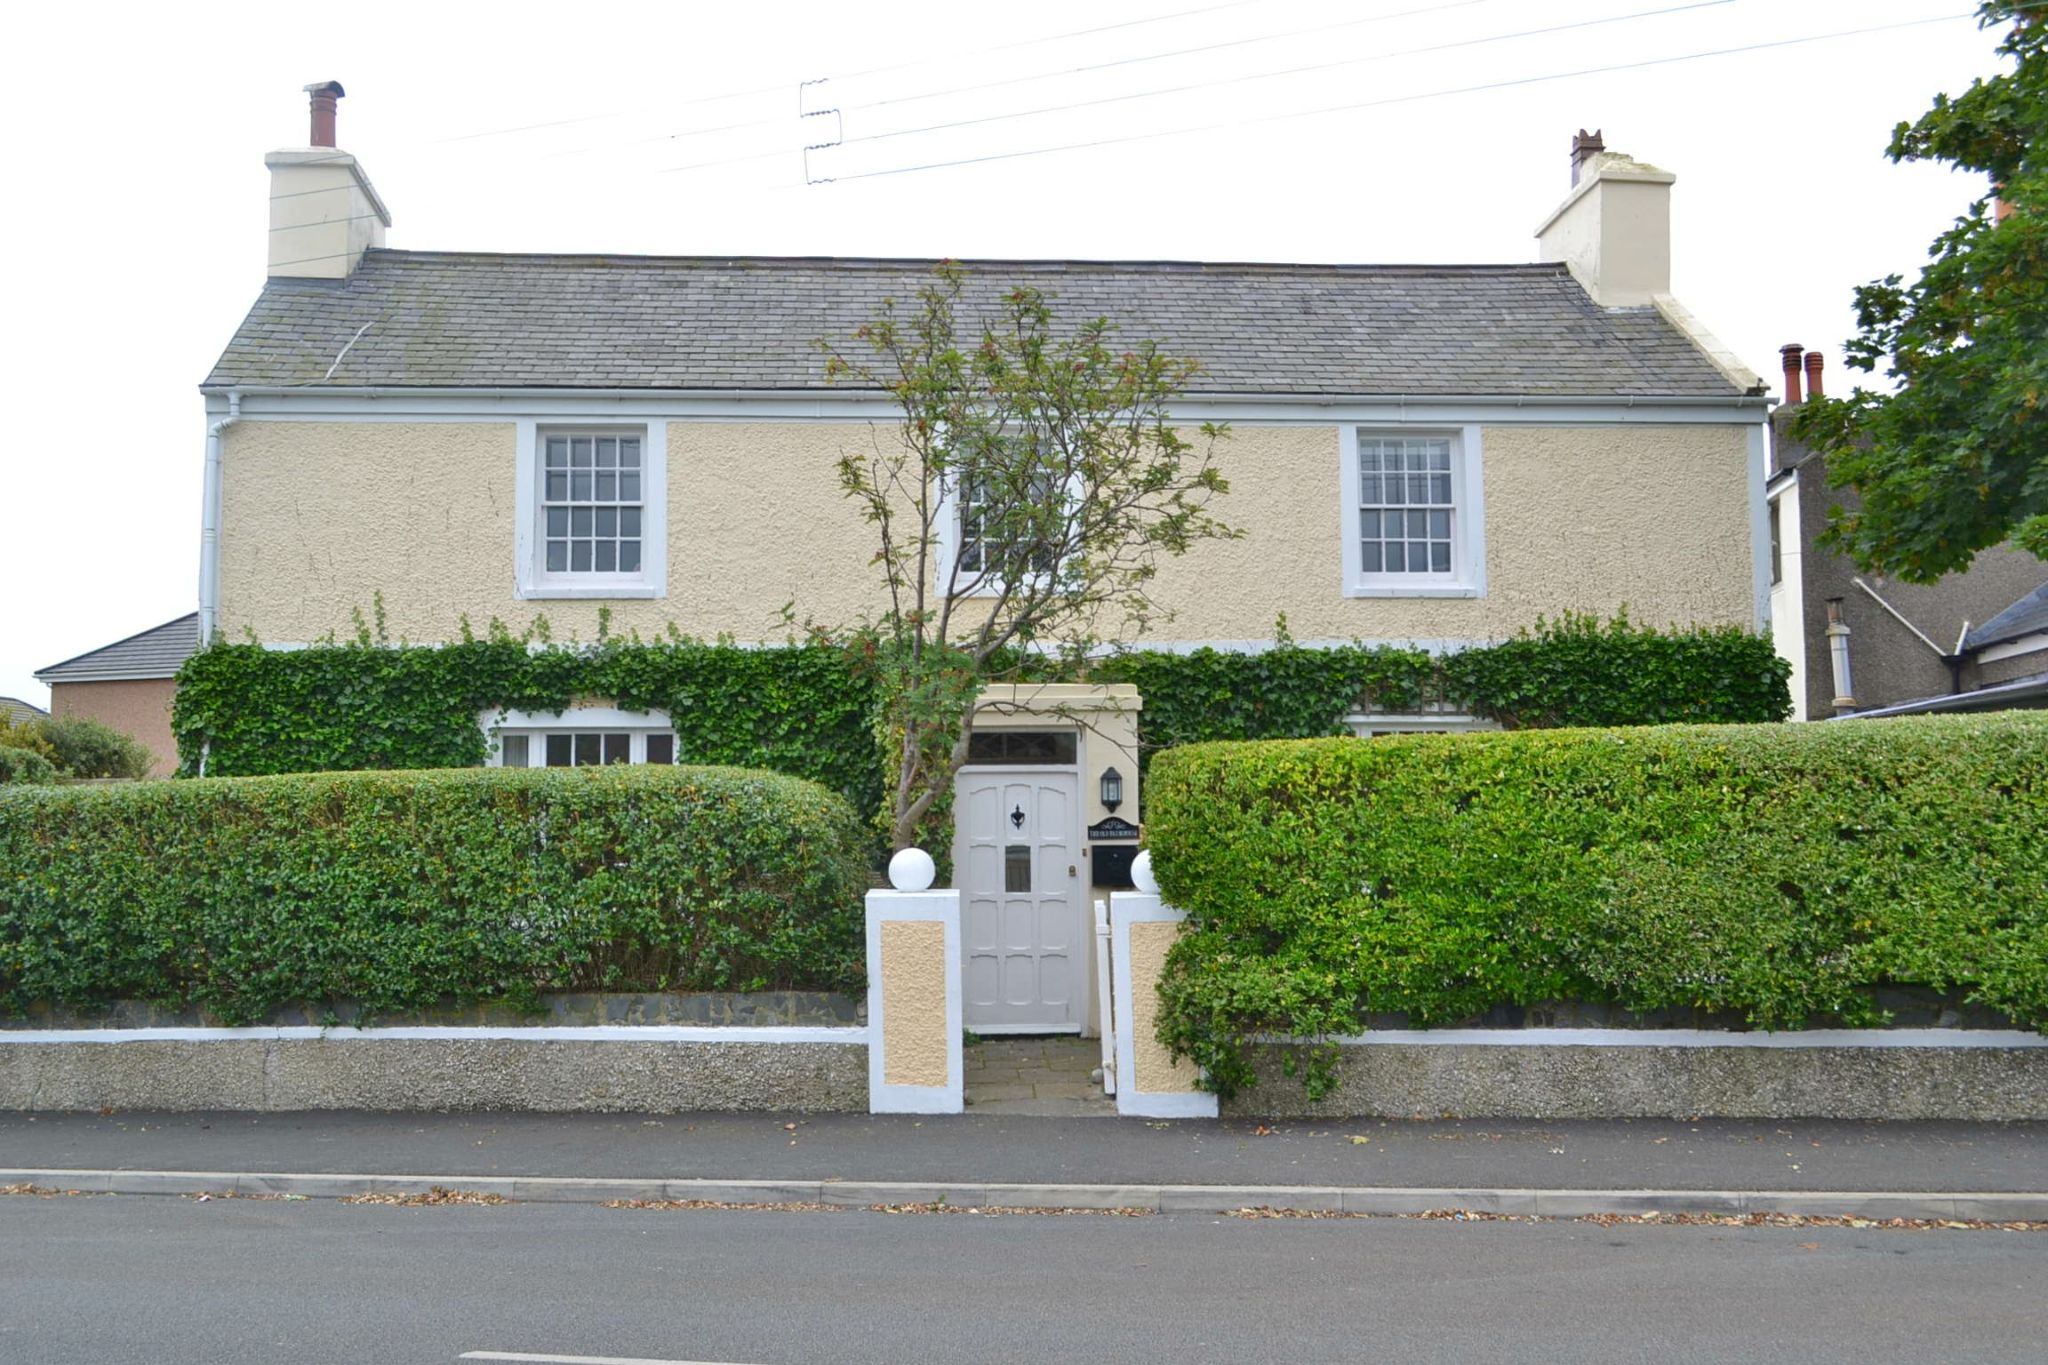 4 bedroom detached house Let in Port St Mary - Photograph 1